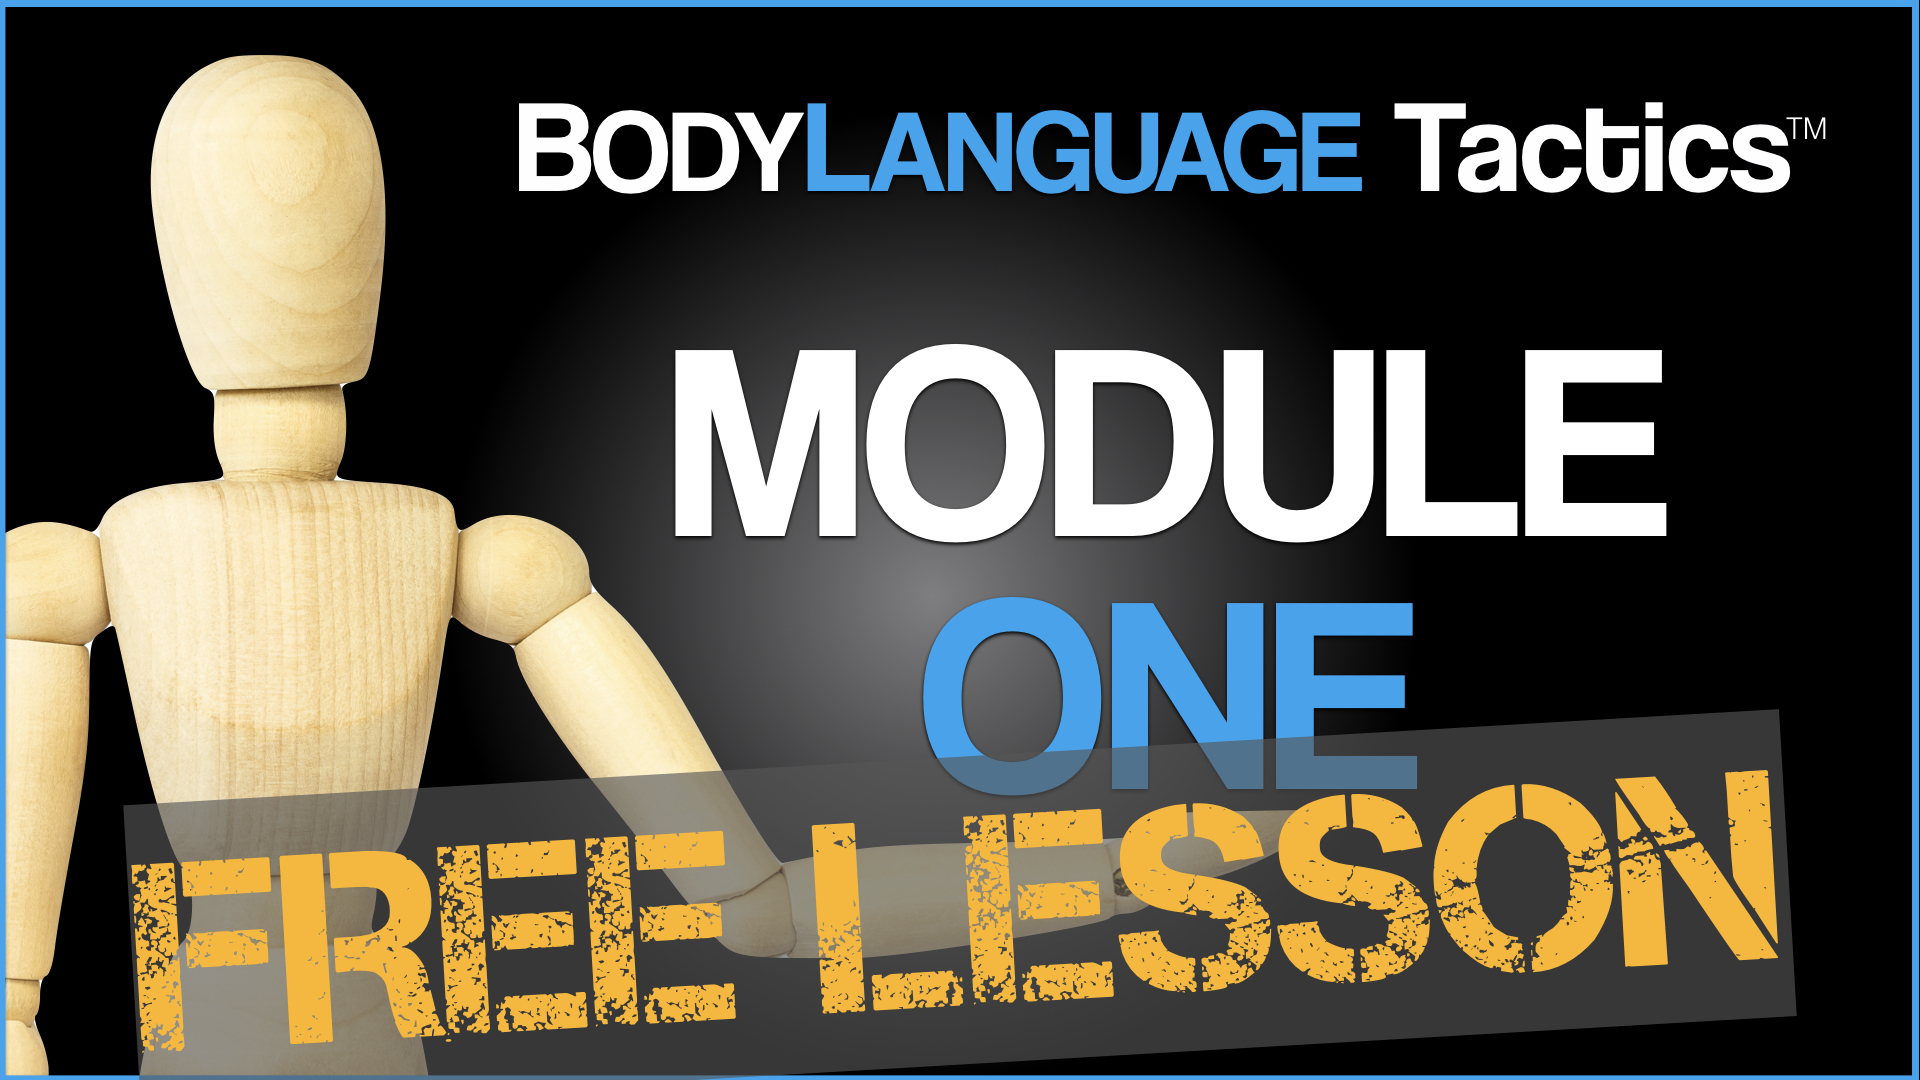 body language tactics - course - free lesson - scott rouse - greg hartley